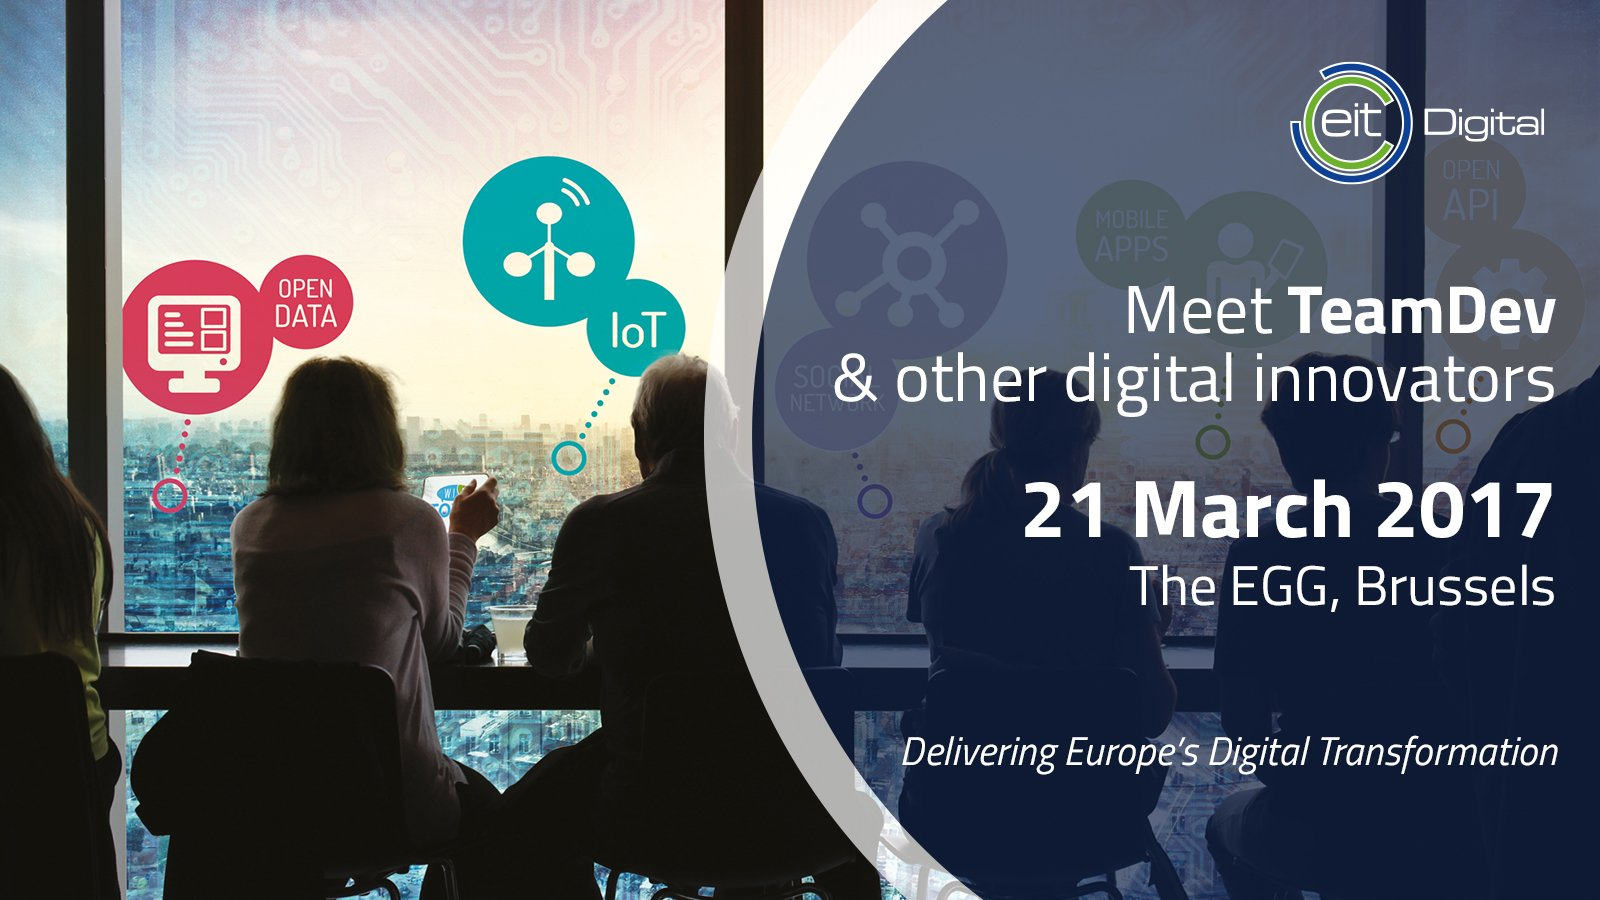 eit-dig-conference-21-march